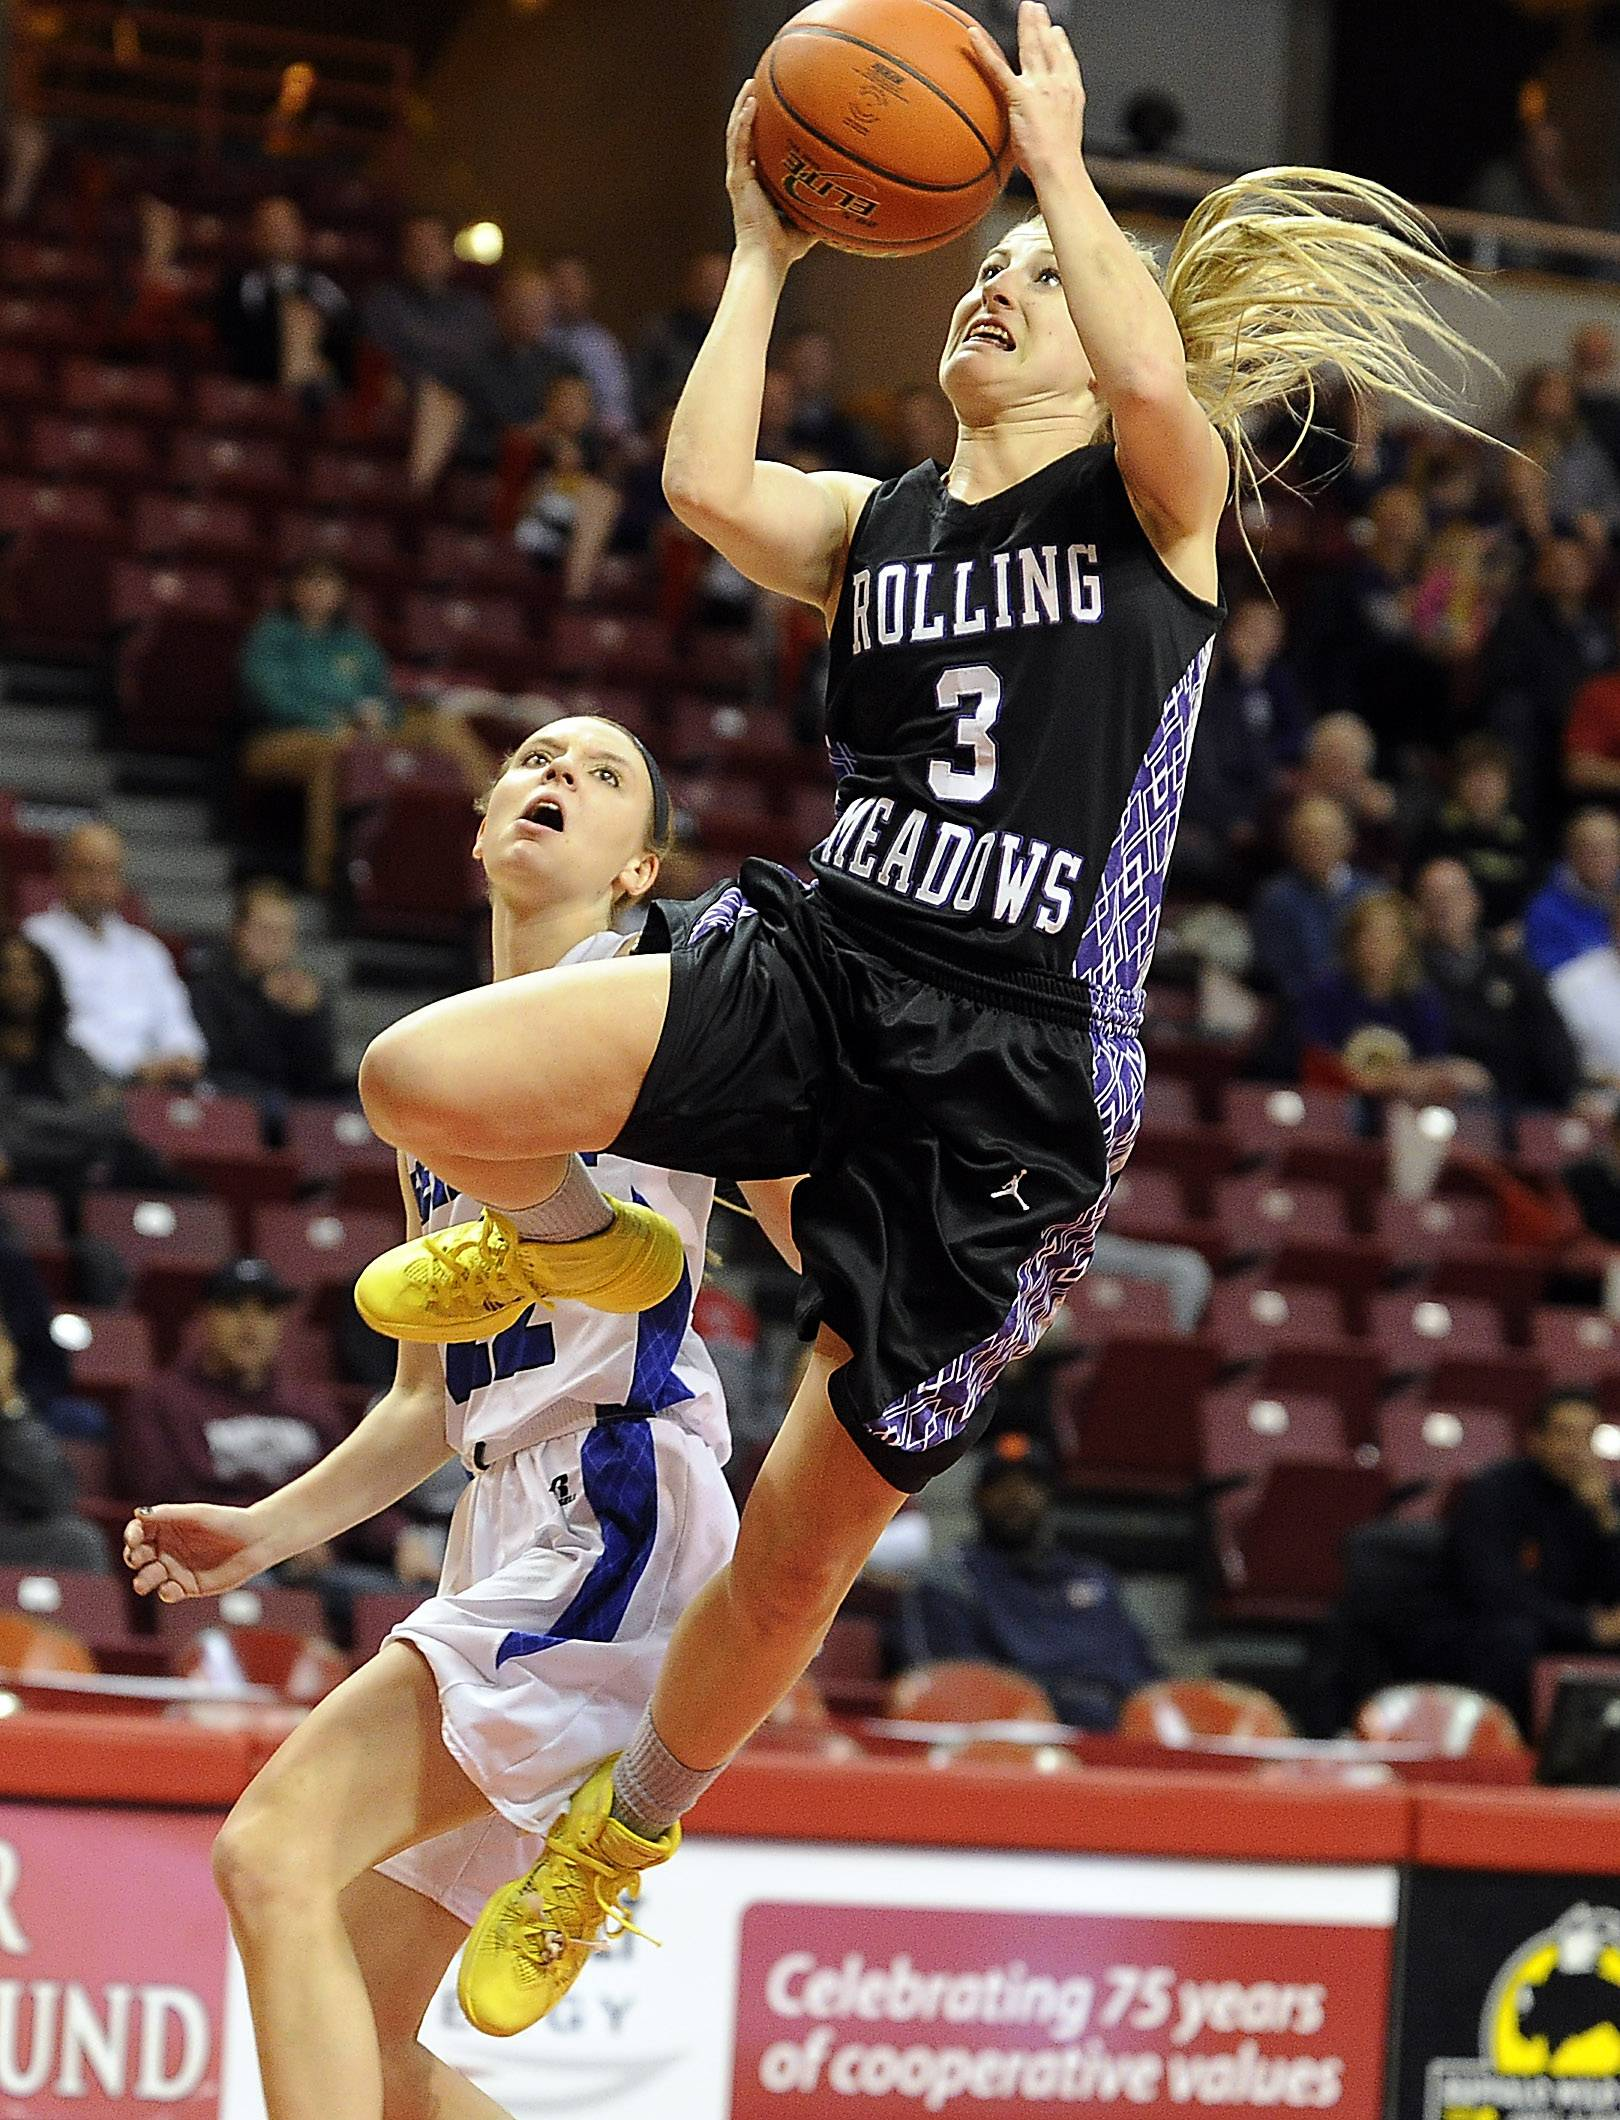 Jackie Kemph of Rolling Meadows delivers to the basket on a steal from Geneva's Sidney Santos.